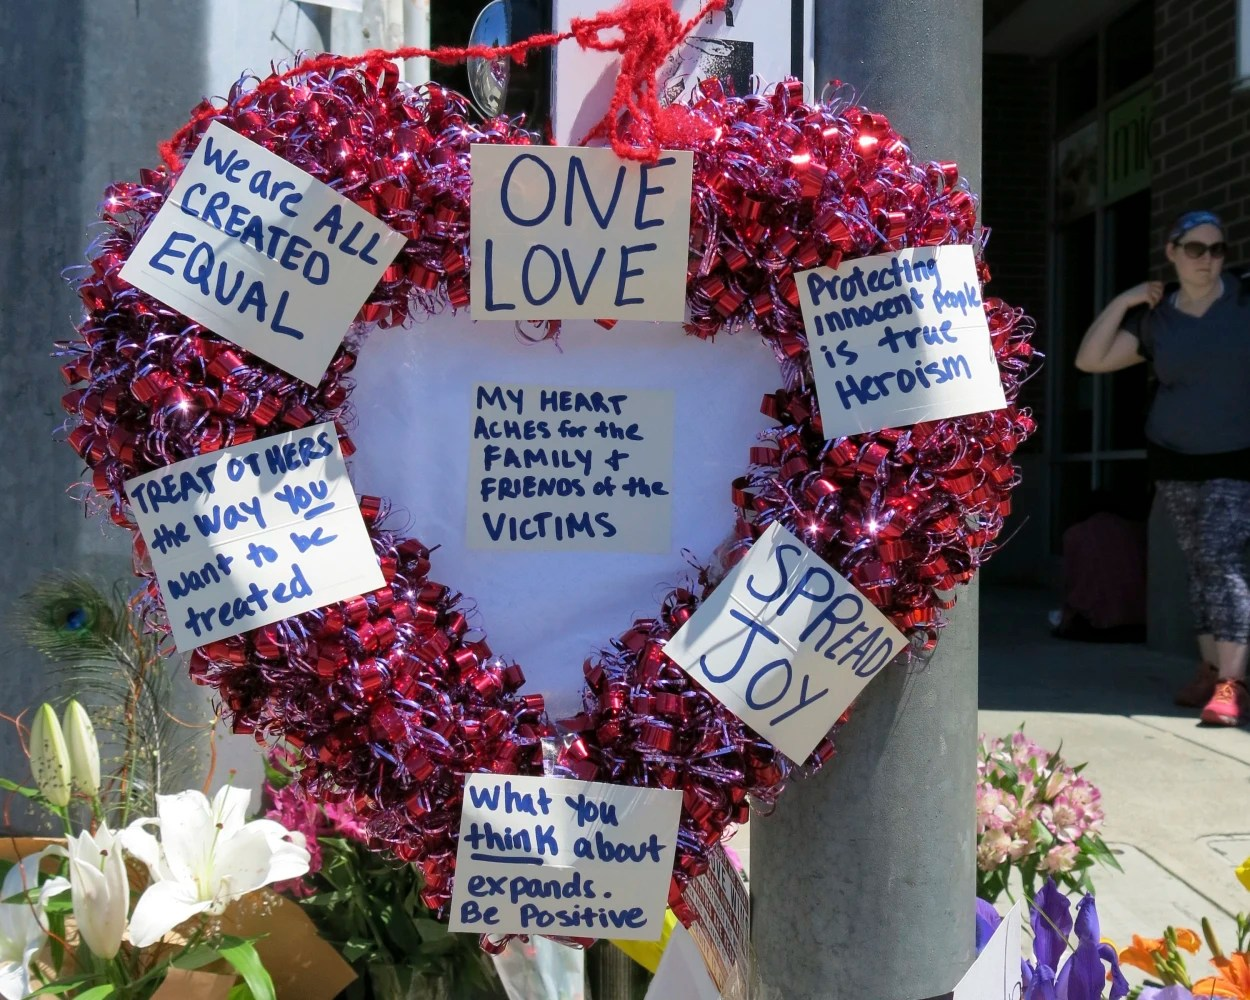 Portland stabbing survivor speaks out, killer complains of suppression